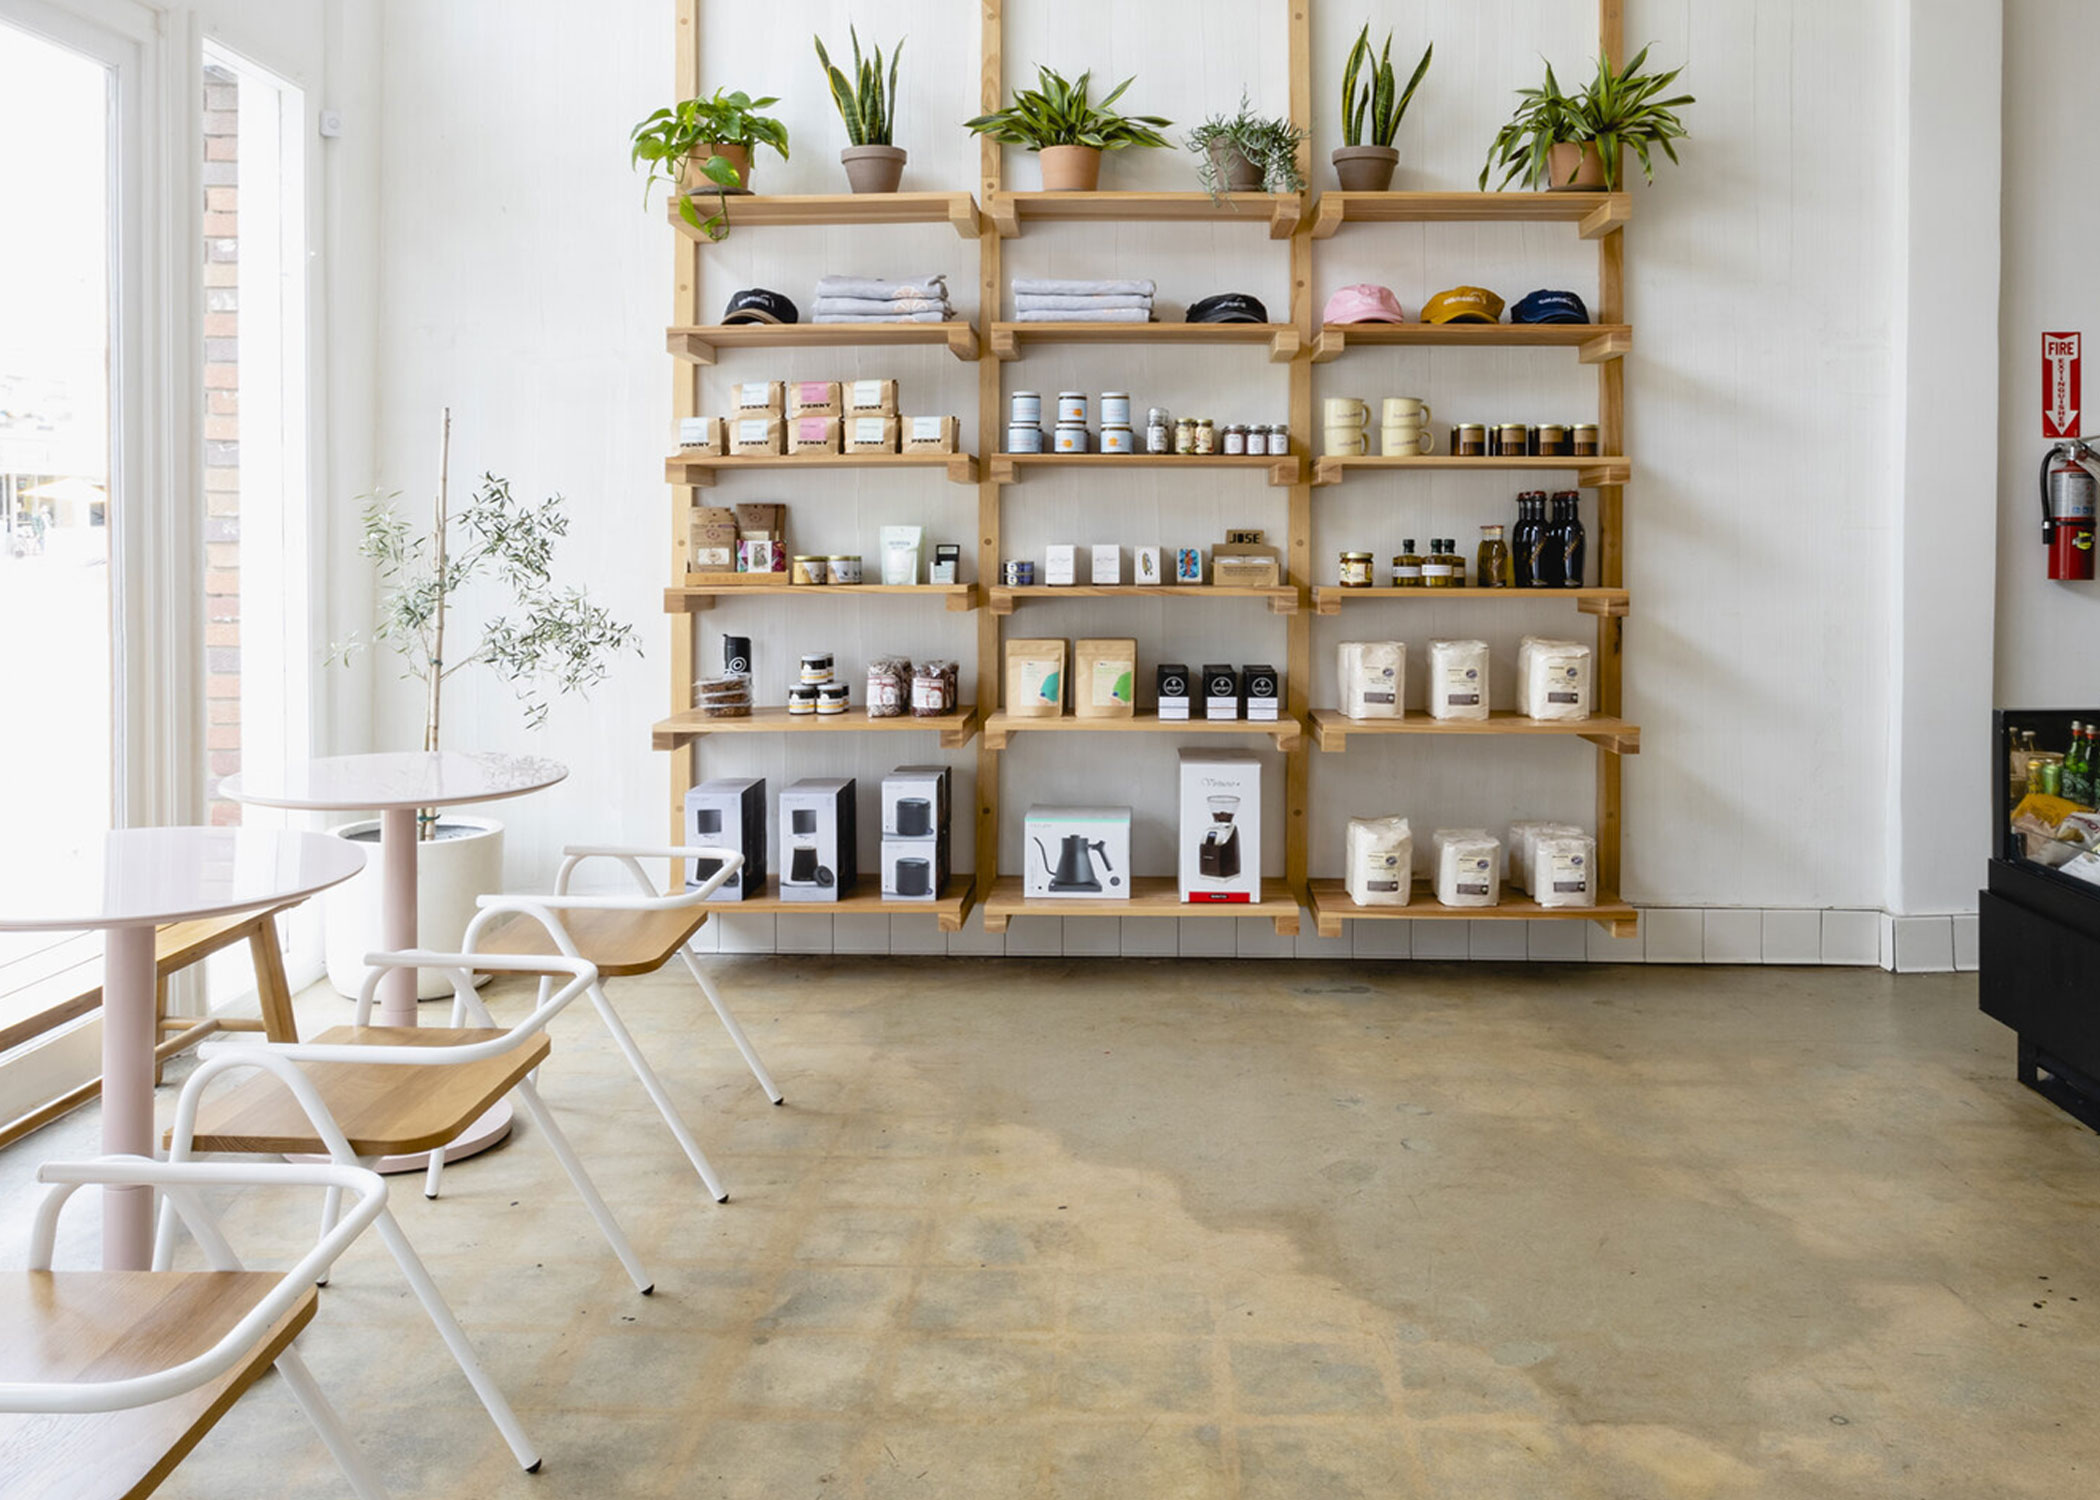 Bakery interior with white walls, wooden shelving, and minimal modern restaurant chairs.